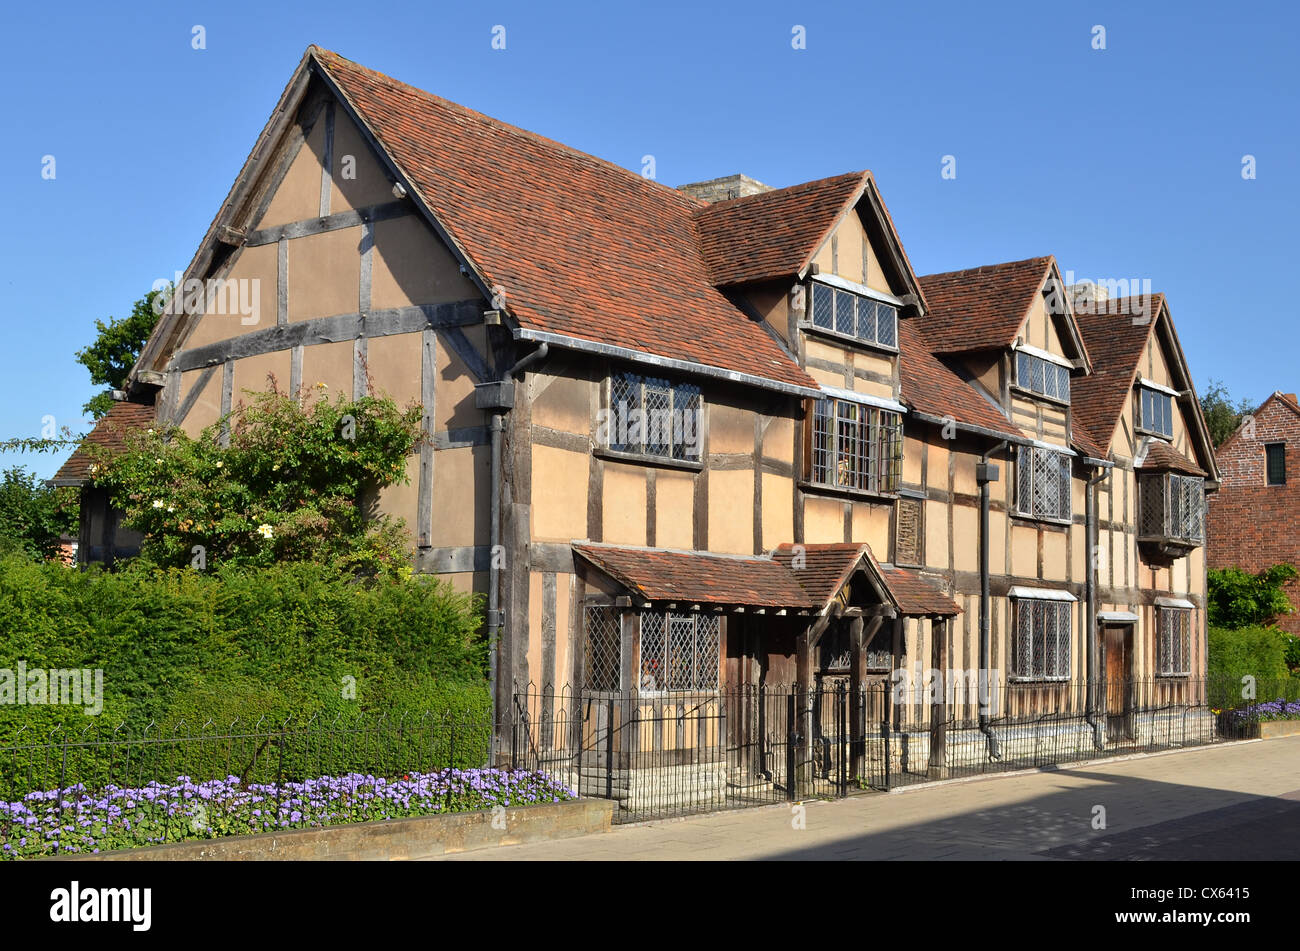 Stratford-upon-Avon, lieu de naissance de Shakespeare, Warwickshire, UK Photo Stock